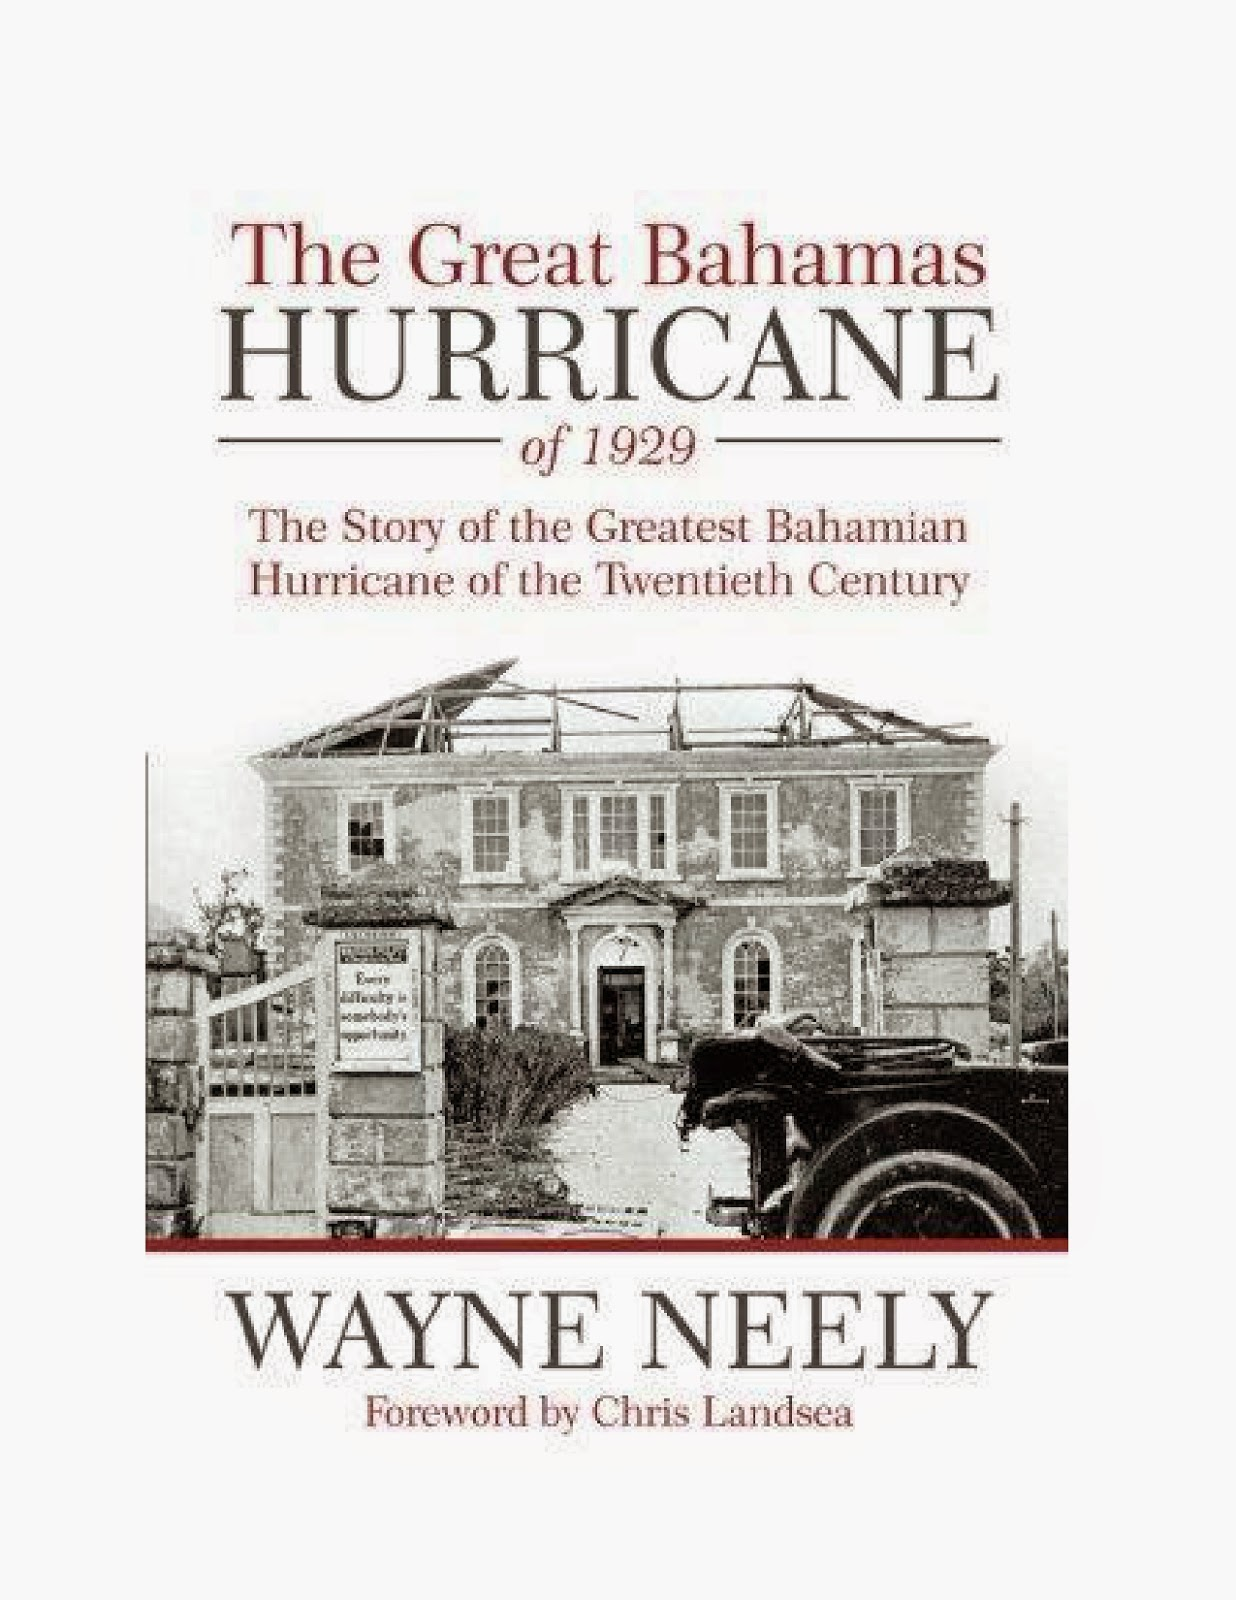 http://www.amazon.com/Great-Bahamas-Hurricane-1929-Twentieth-ebook/dp/B00HF0JT1O/ref=la_B001JS19W0_1_2?s=books&ie=UTF8&qid=1408989519&sr=1-2